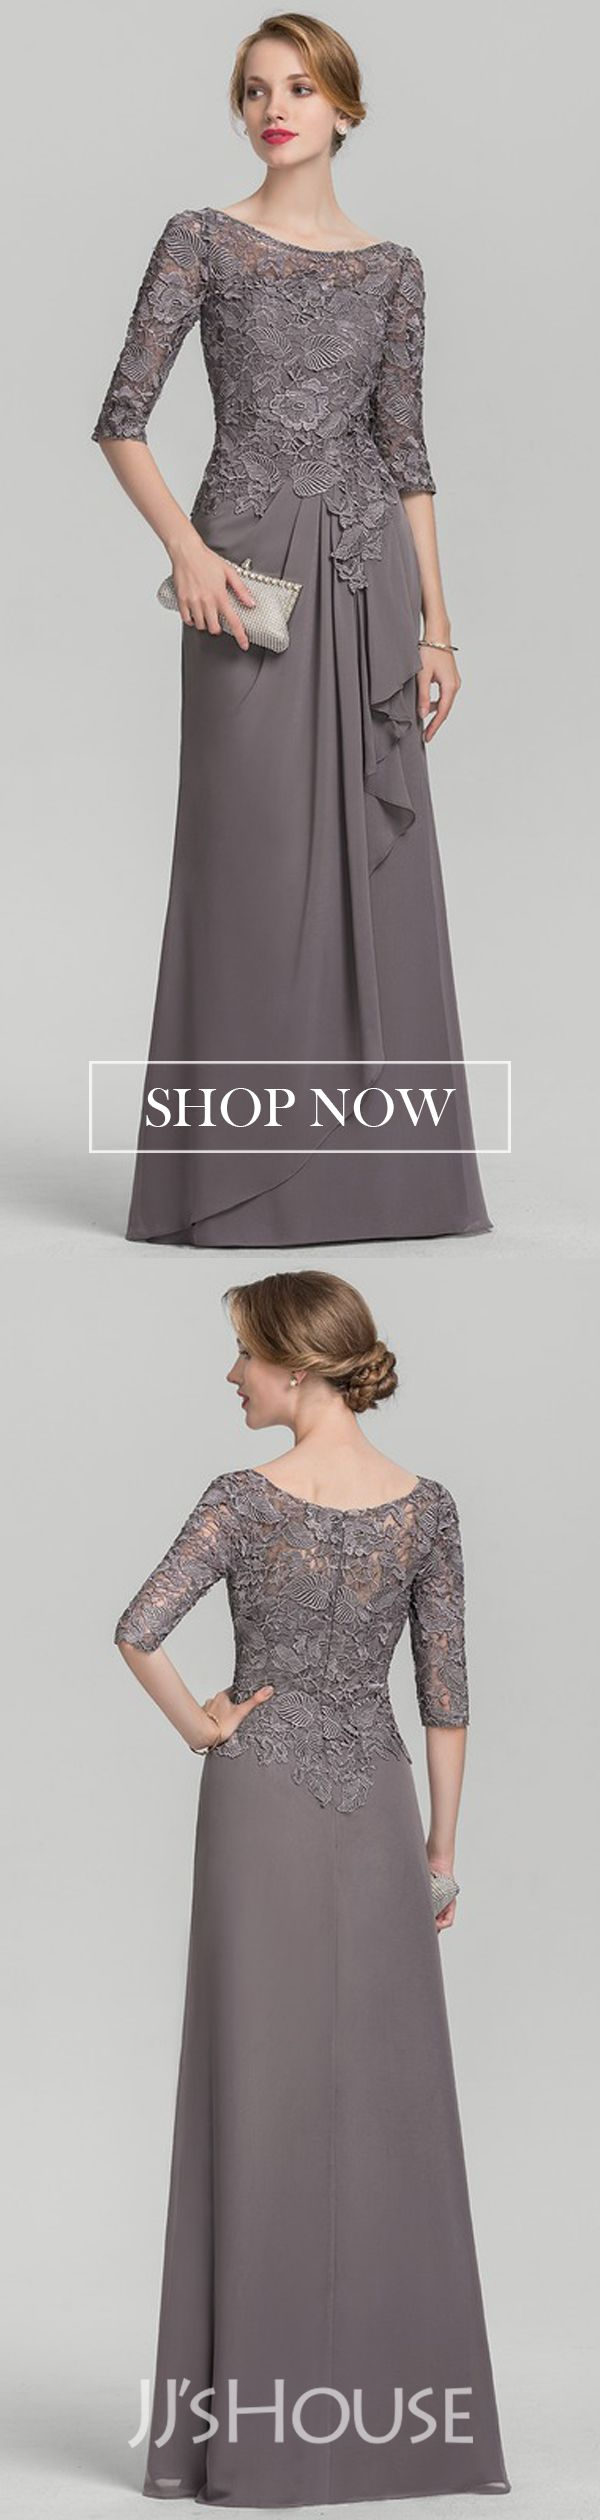 A-Line/Princess Scoop Neck Chiffon Lace Mother of the Bride Dress With Cascading Ruffles #groomdress